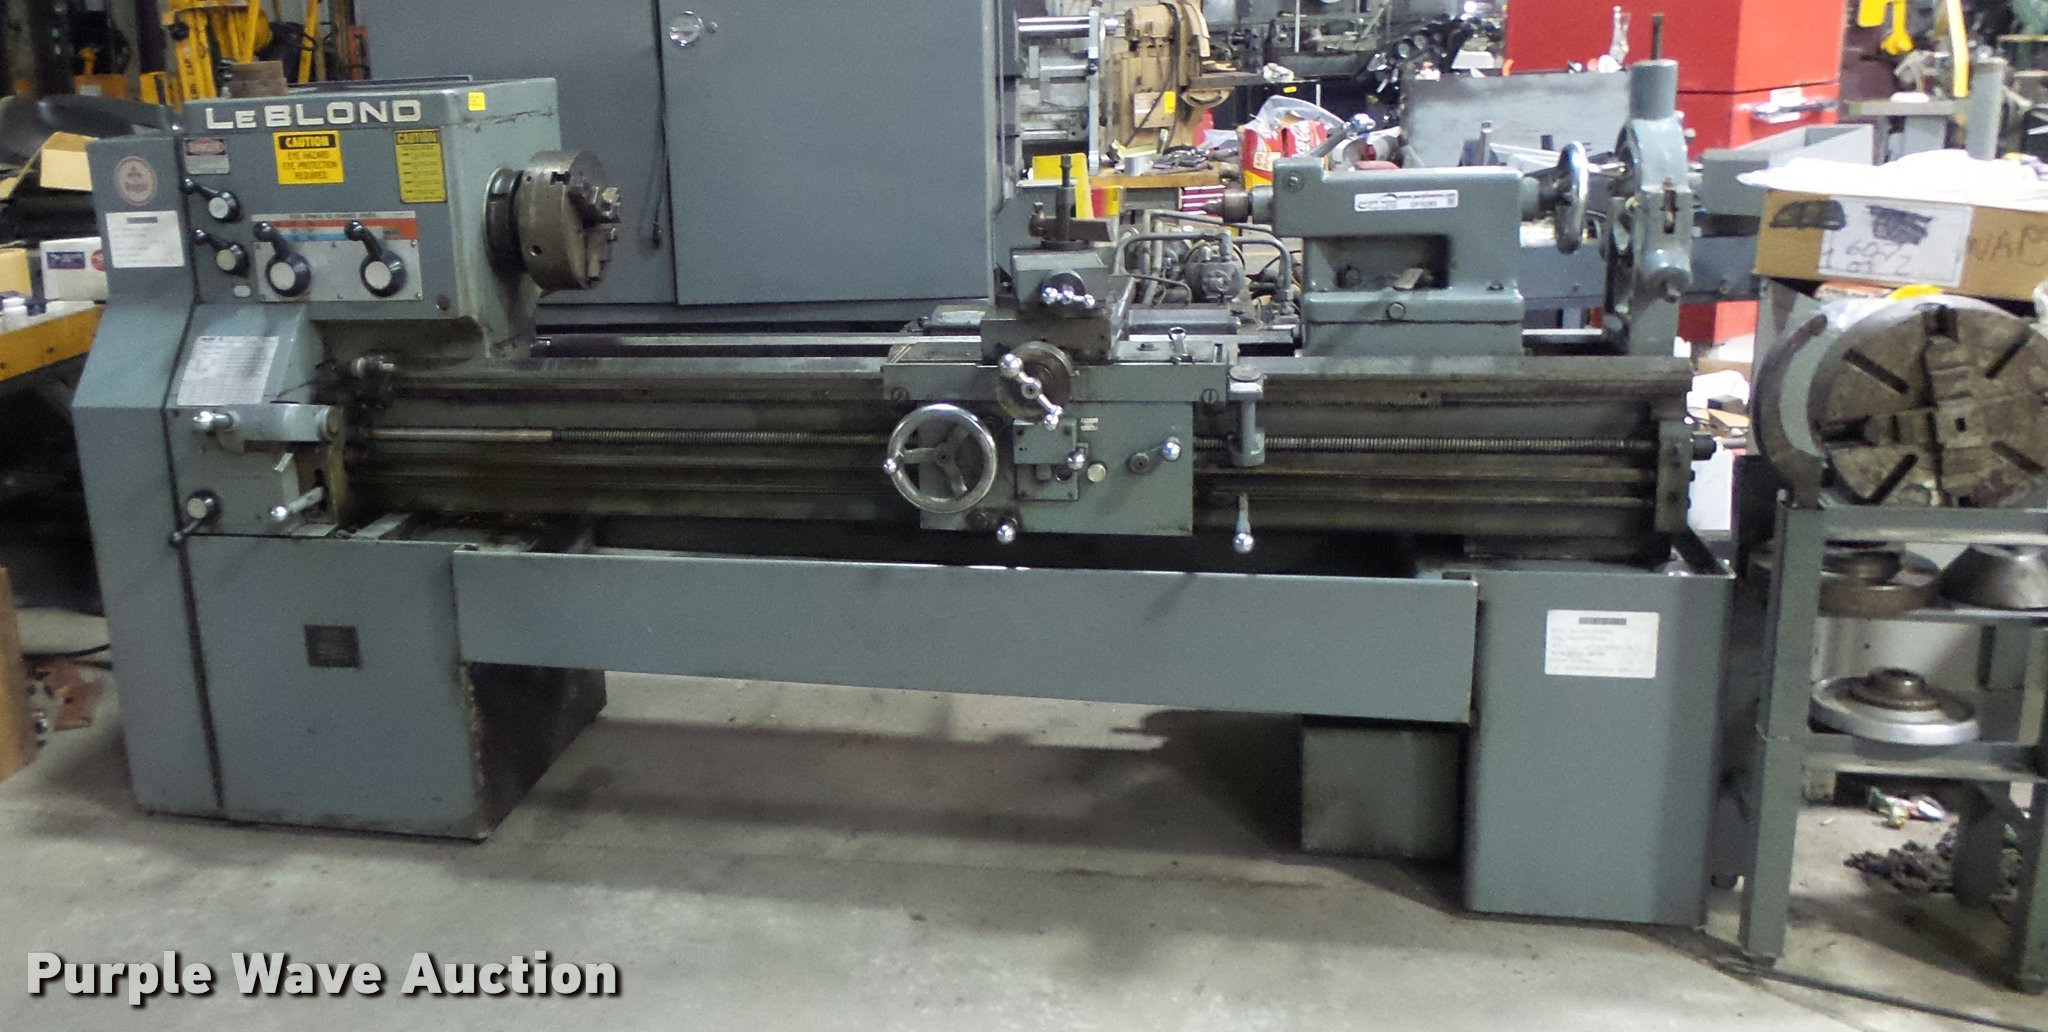 Leblond Regal Lathe For Sale